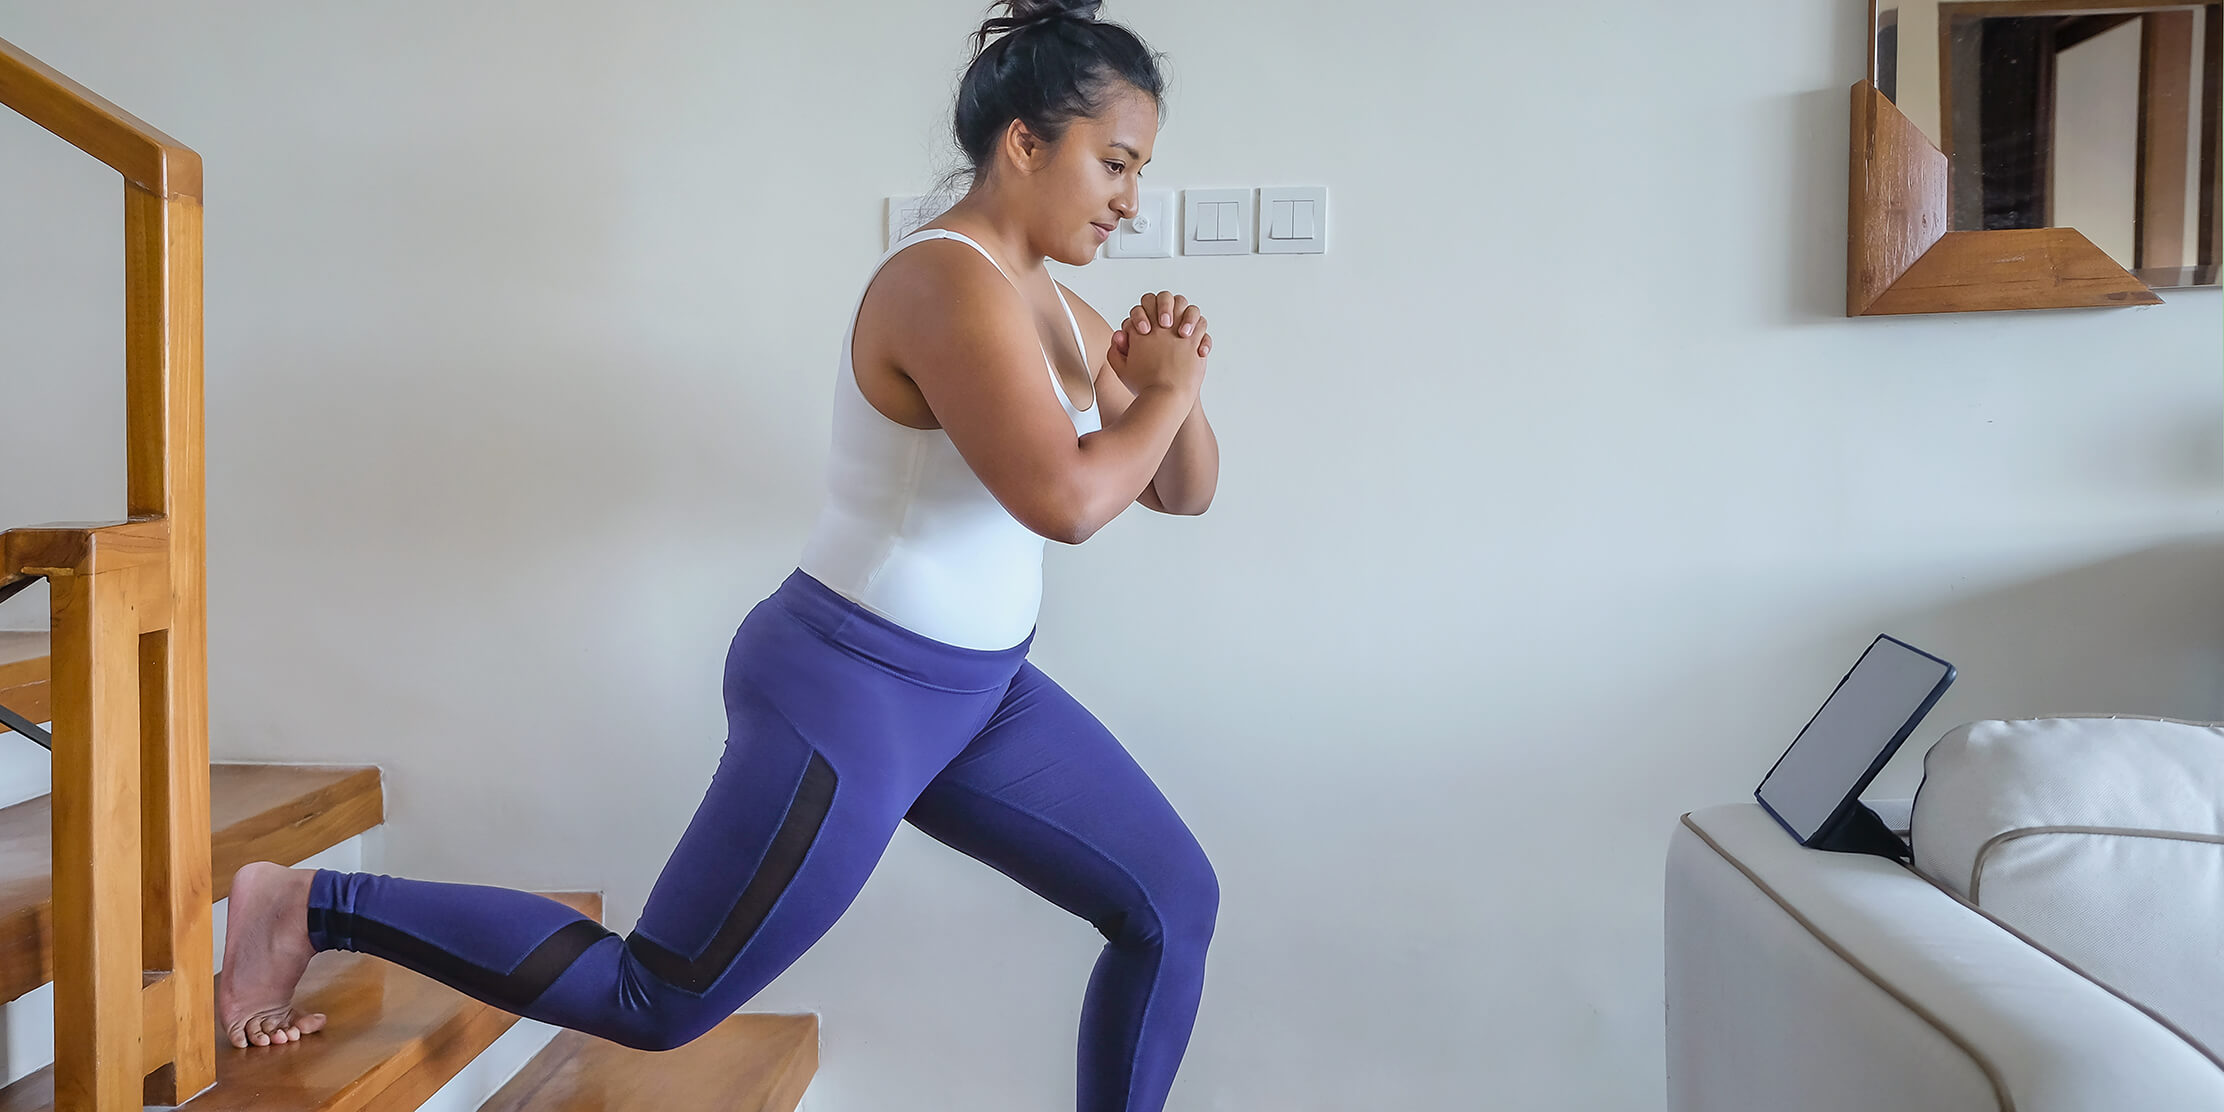 Photo for 5 stair exercises to do at home